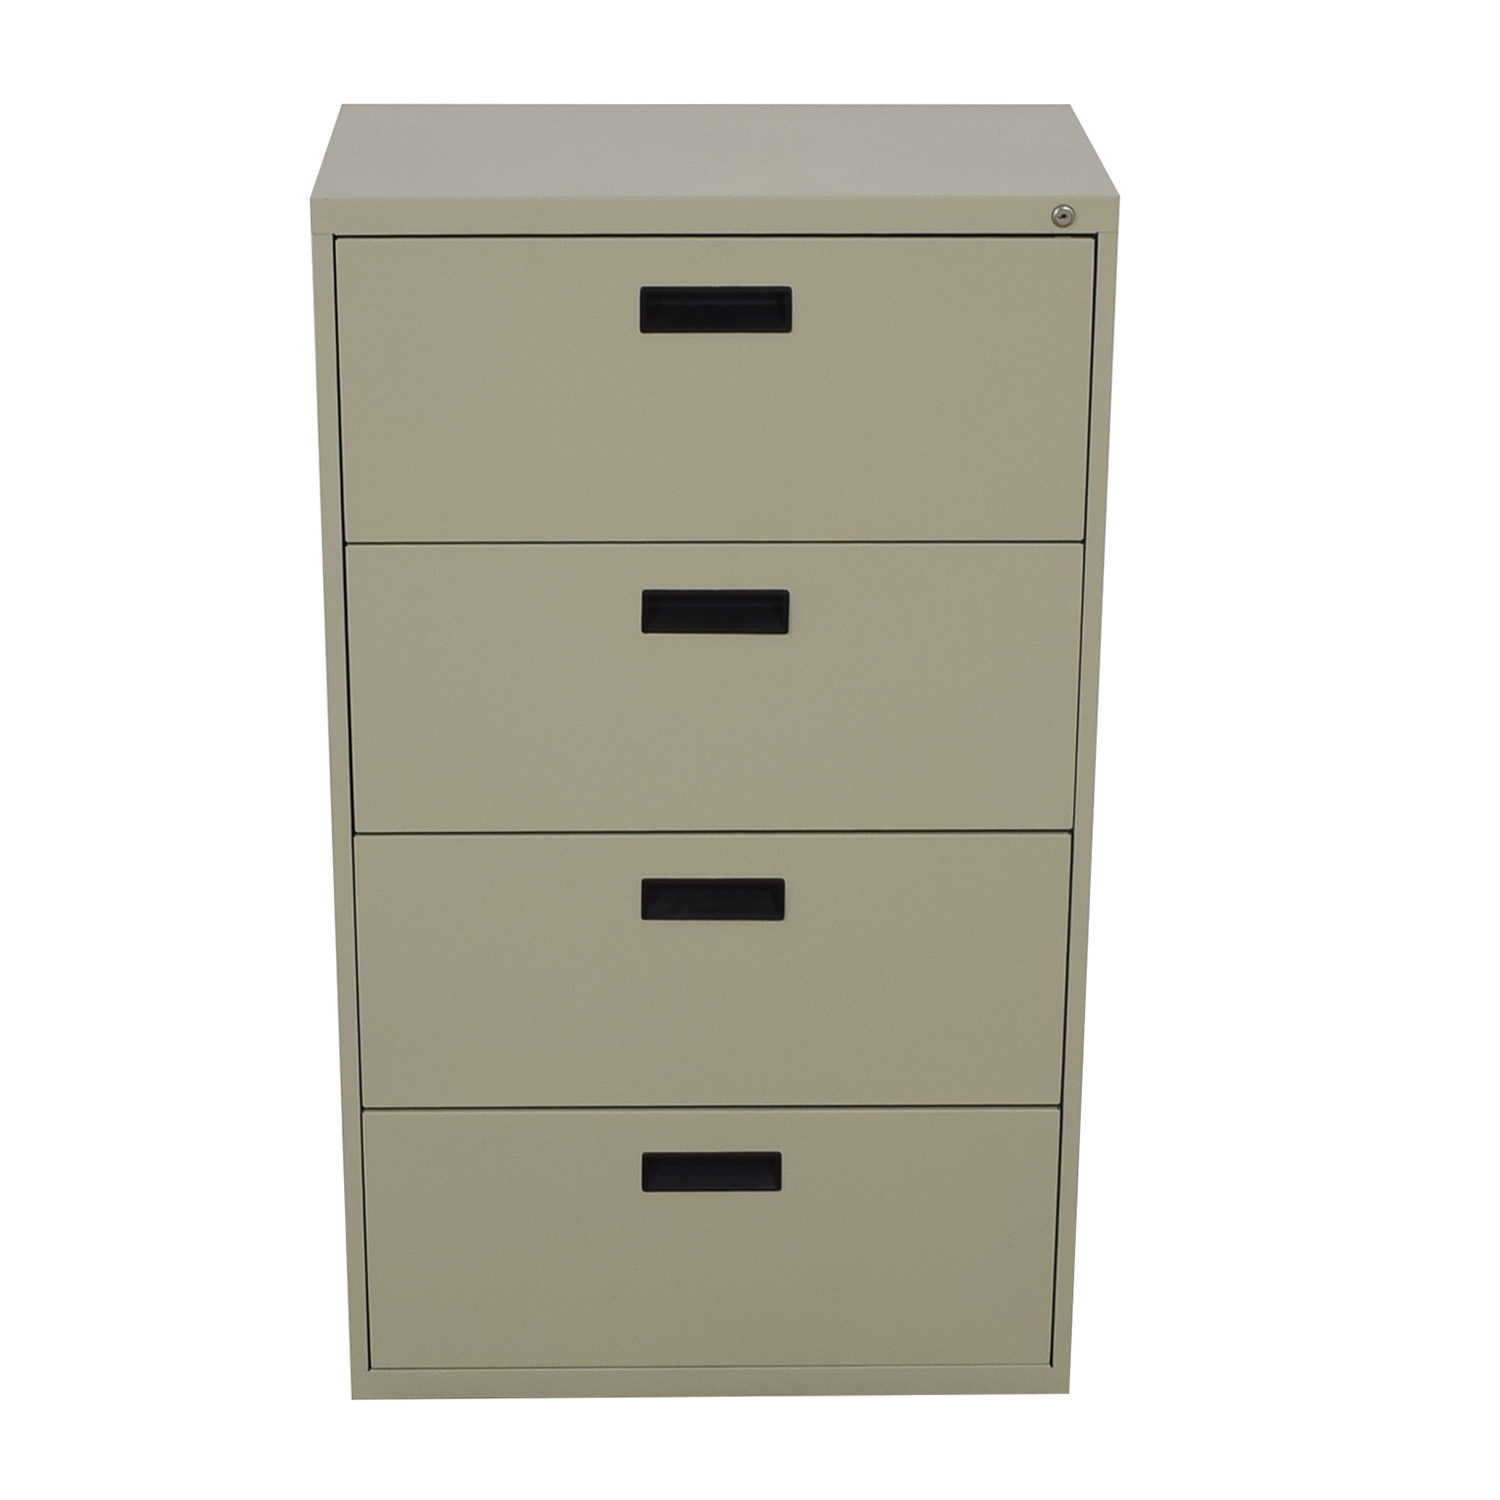 shop Sandusky Sandusky 4-Drawer Lateral File Cabinet online